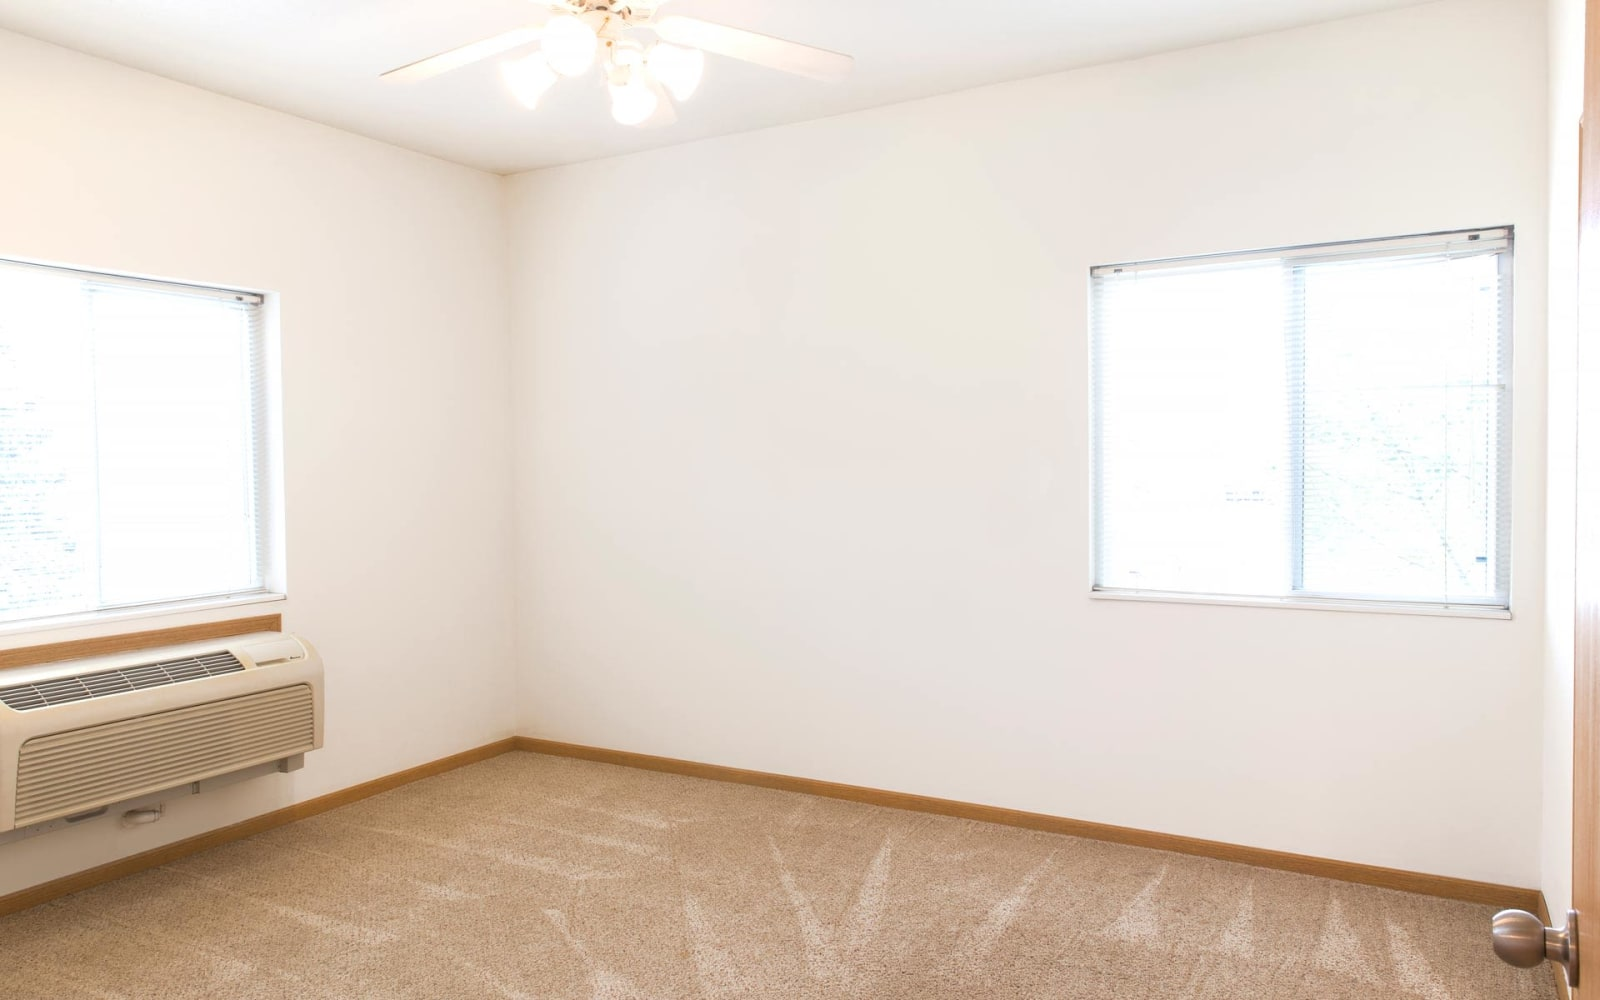 Bedroom with a ceiling fan and air conditioning at Westwood Village in Ames, Iowa